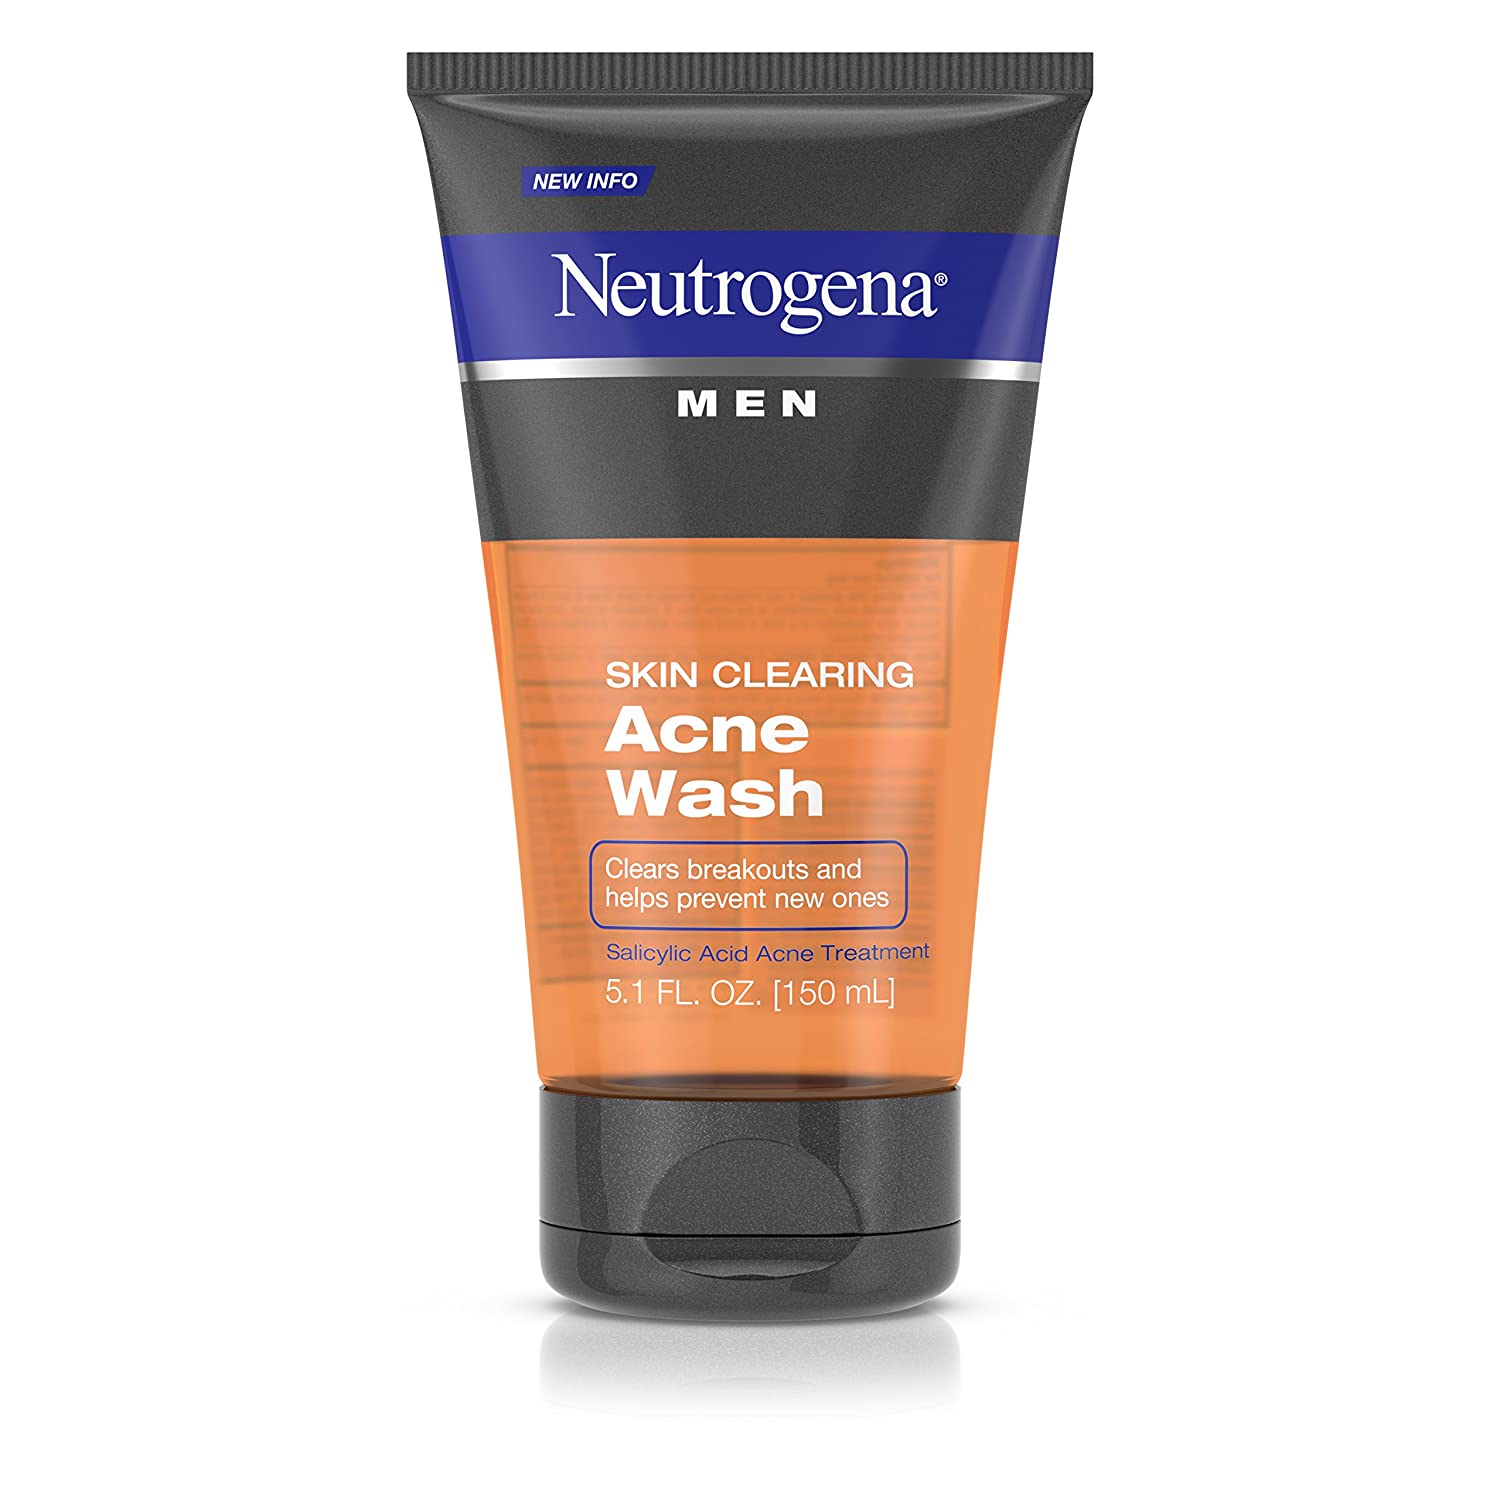 Neutrogena Men Skin Clearing Daily Acne Face Wash with Salicylic Acid Acne Treatment, Non-Comedogenic Facial Cleanser to Treat & Prevent Breakouts, 5.1 fl. oz Johnson & Johnson SLC 356786